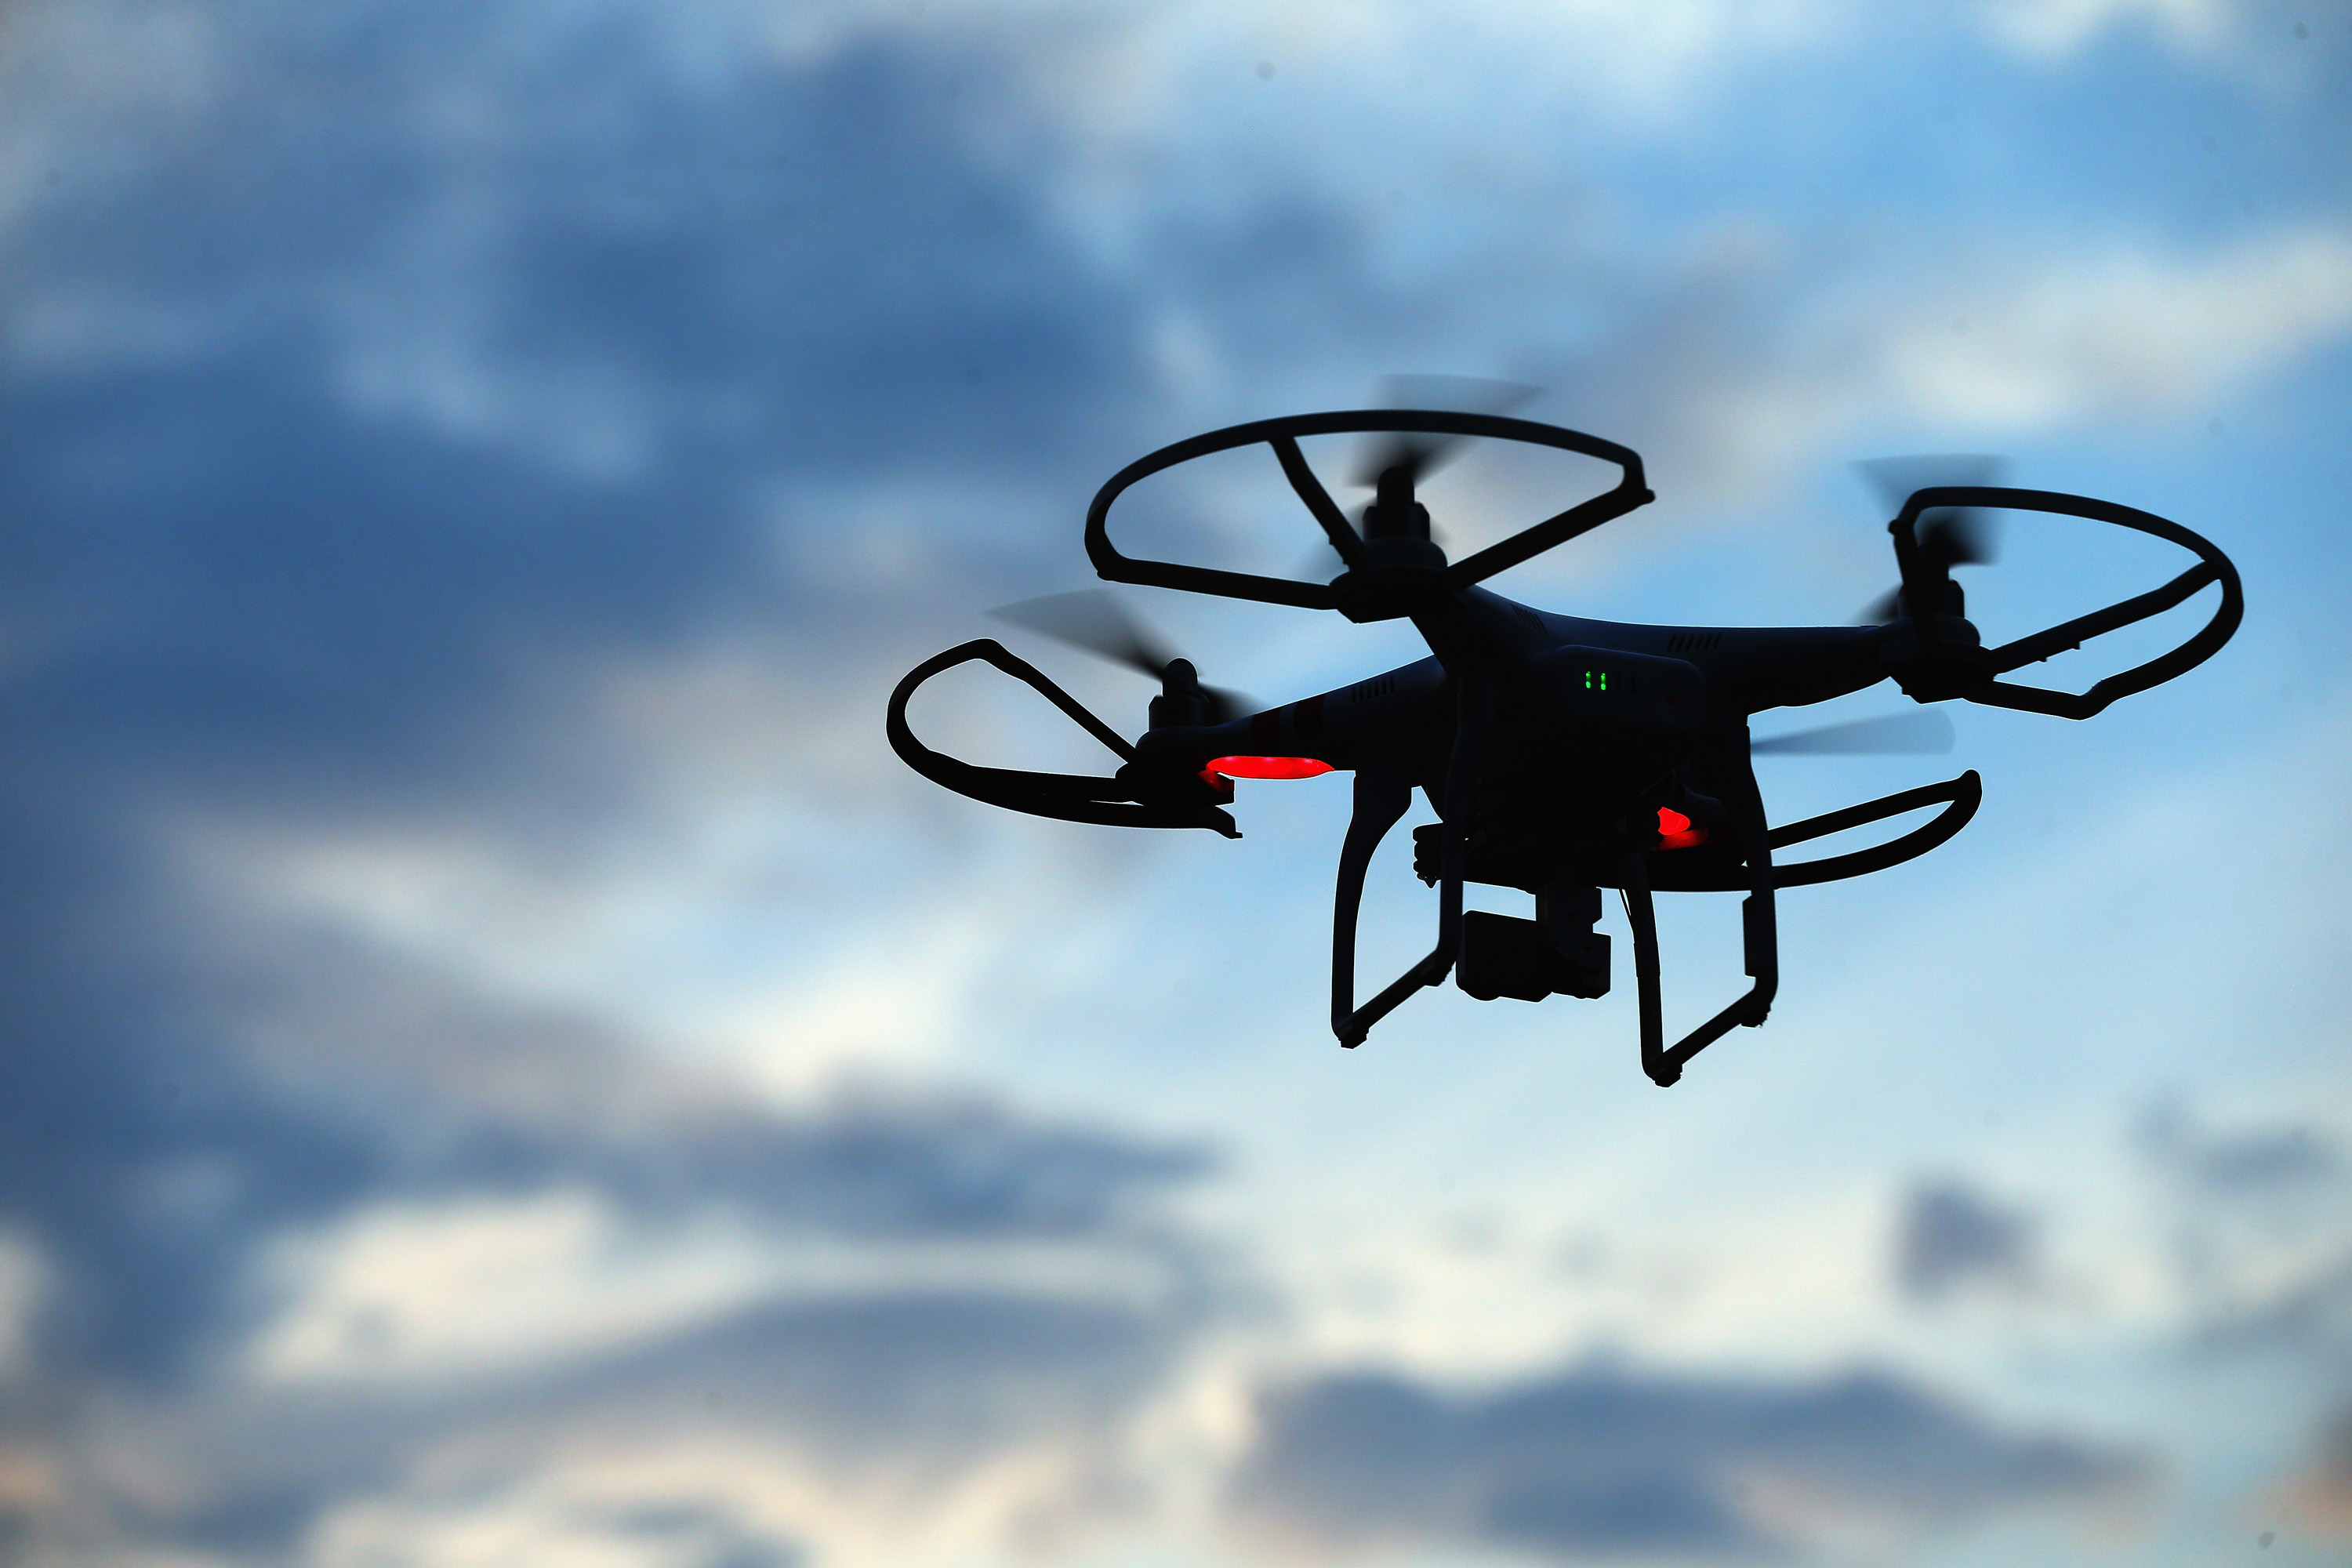 Drones: FAA Now Offering $5 Refunds for Previous Drone Registrations |  Fortune